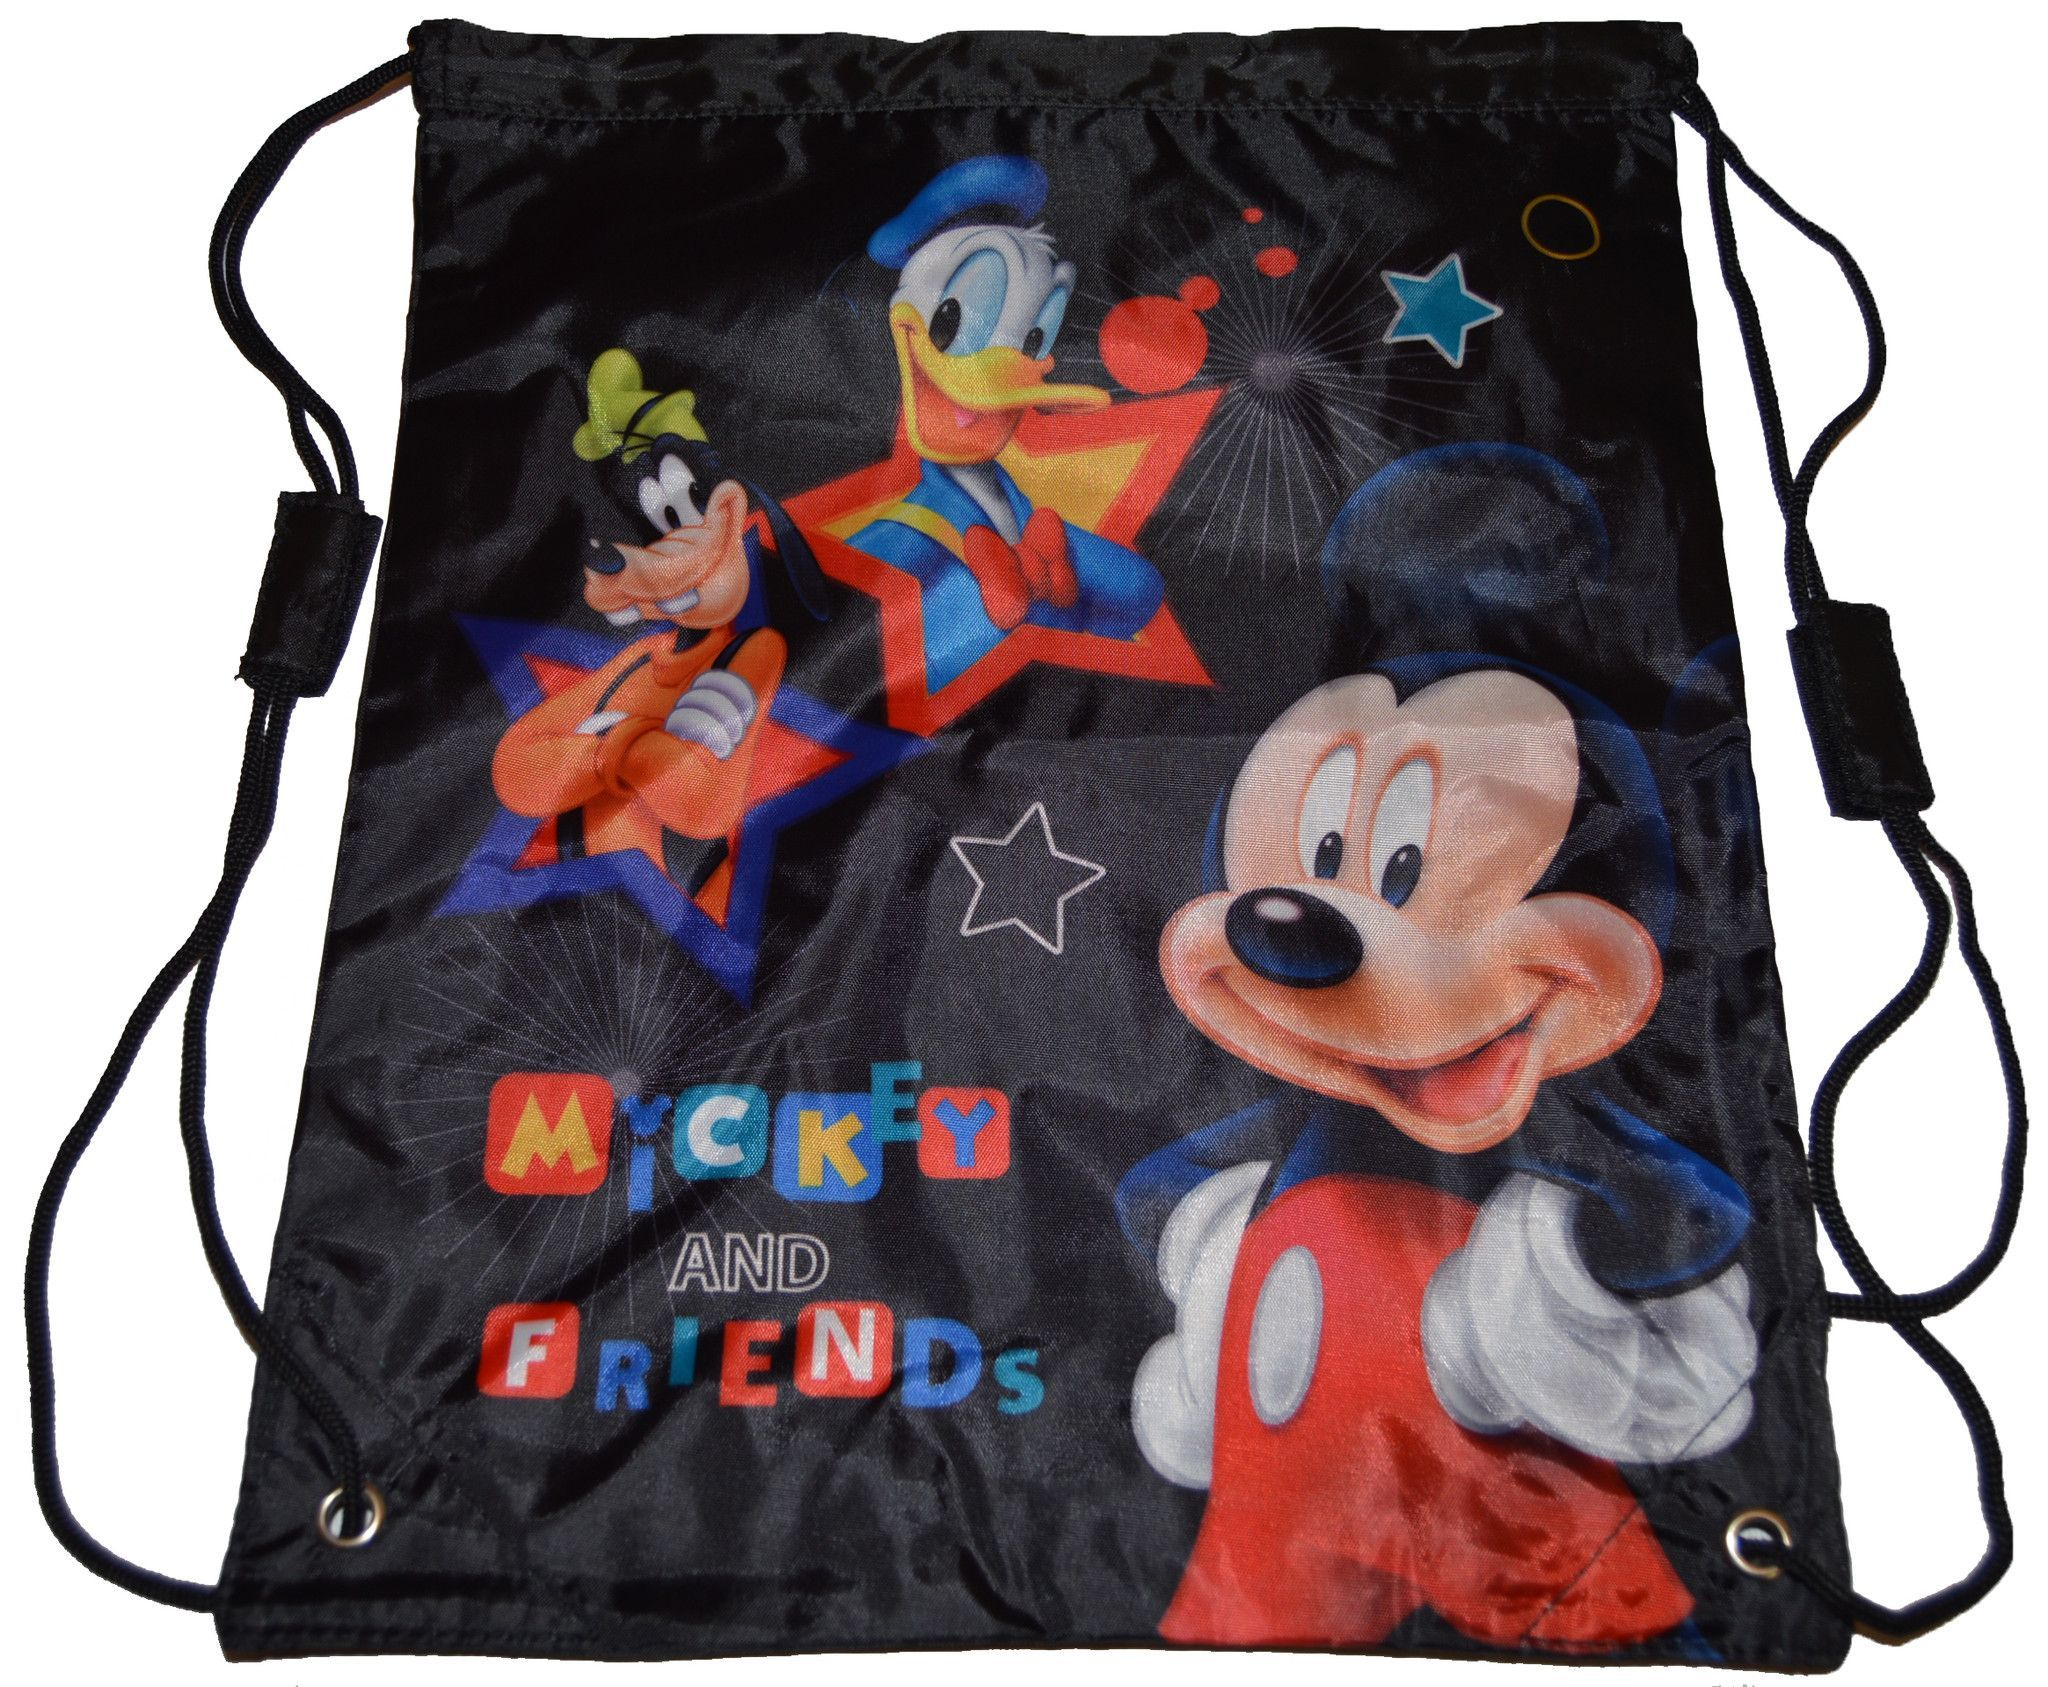 6cc64321771 Official Disney Stars Mickey Mouse and Friends Draw String Backpack Bag  Black